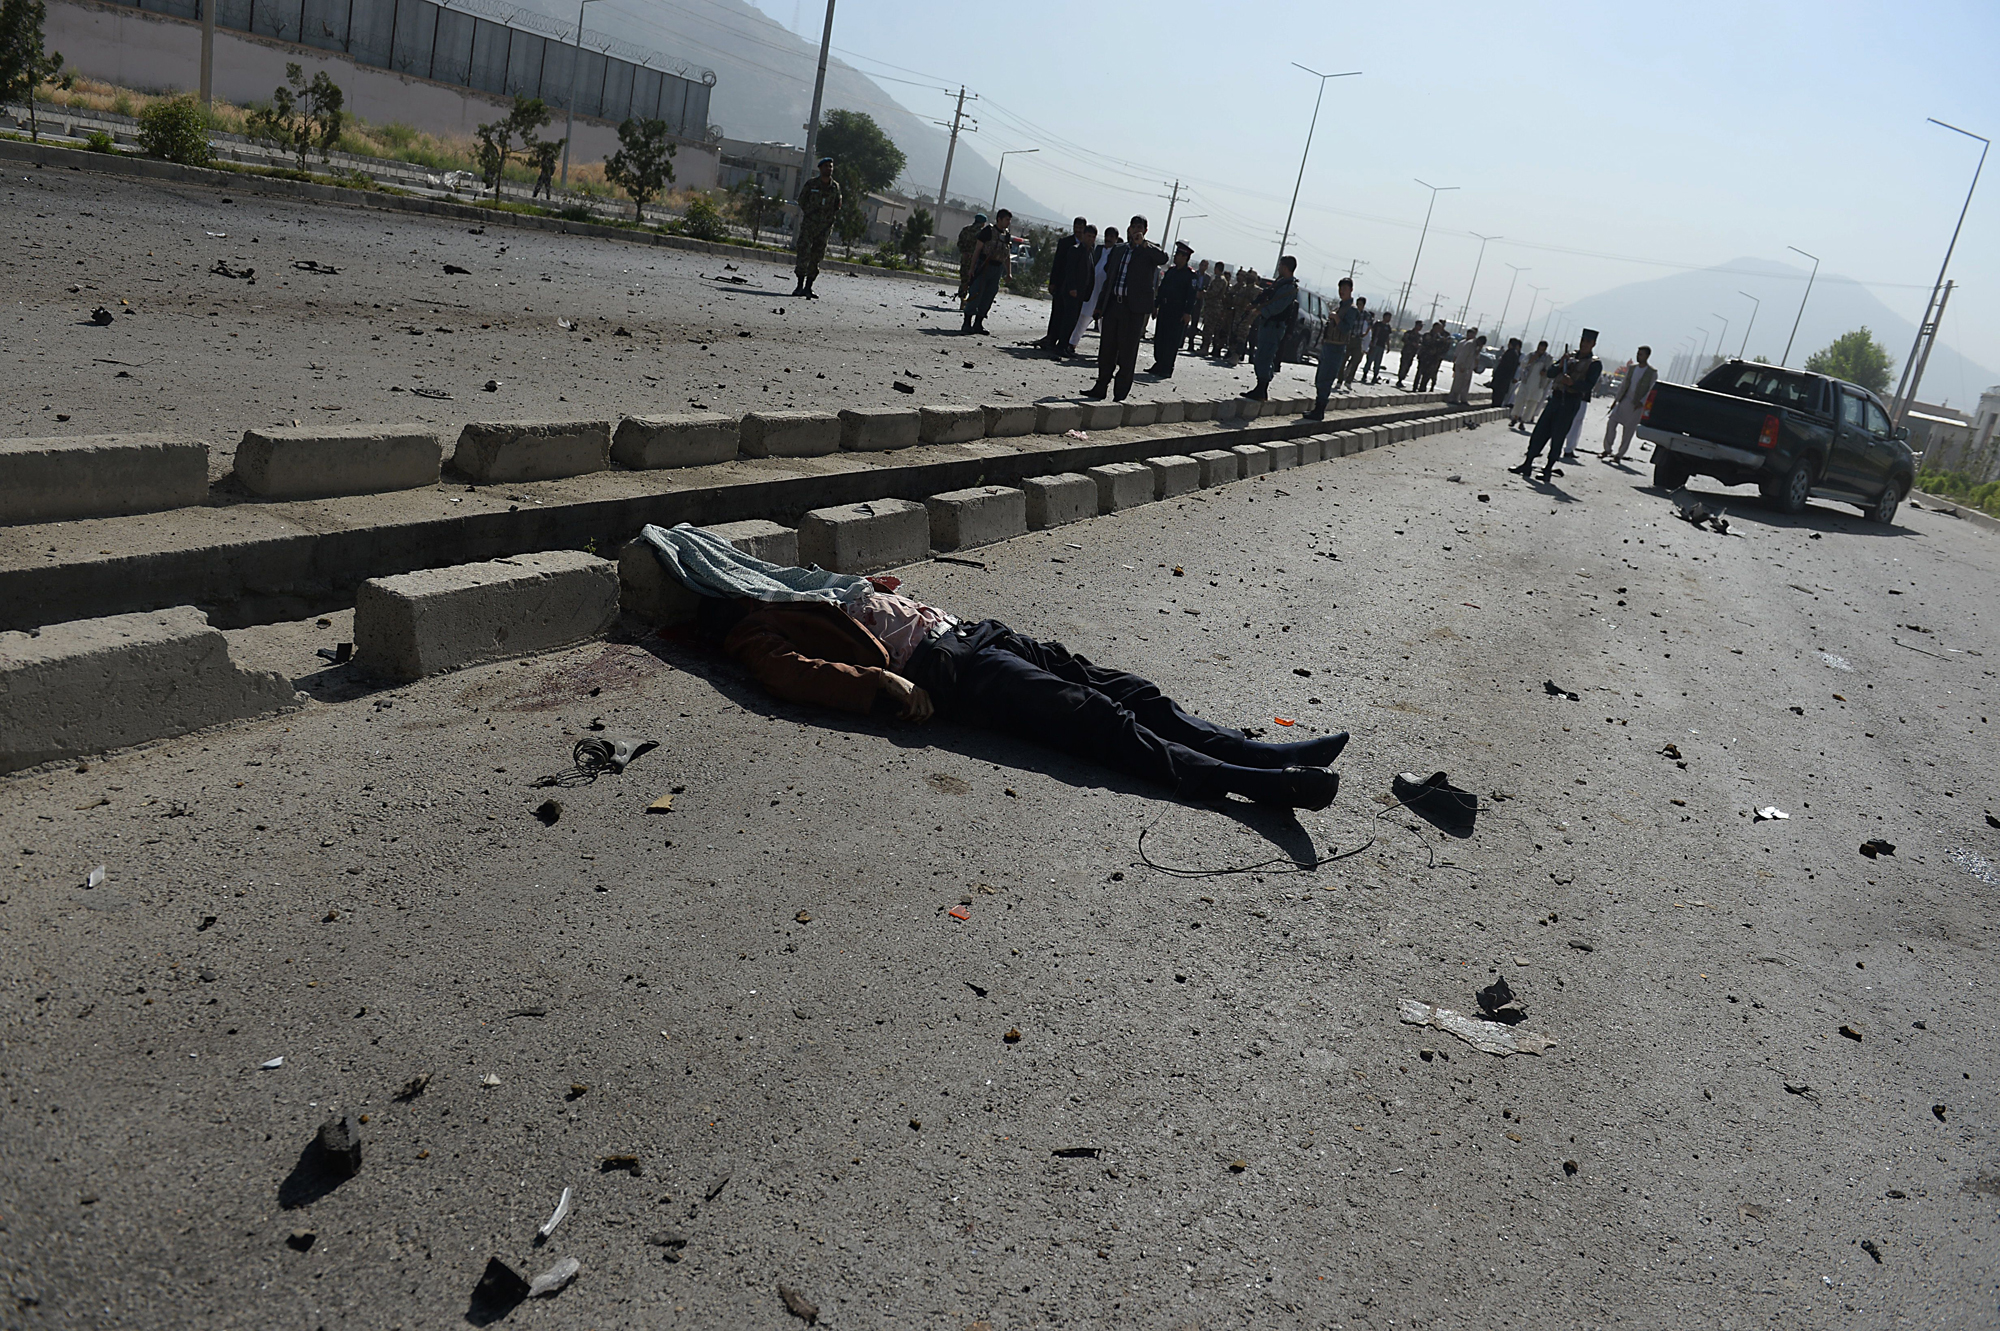 A victim's body lies on the road as Afghan security forces inspect the site of a suicide attack in Kabul on June 21, 2014.